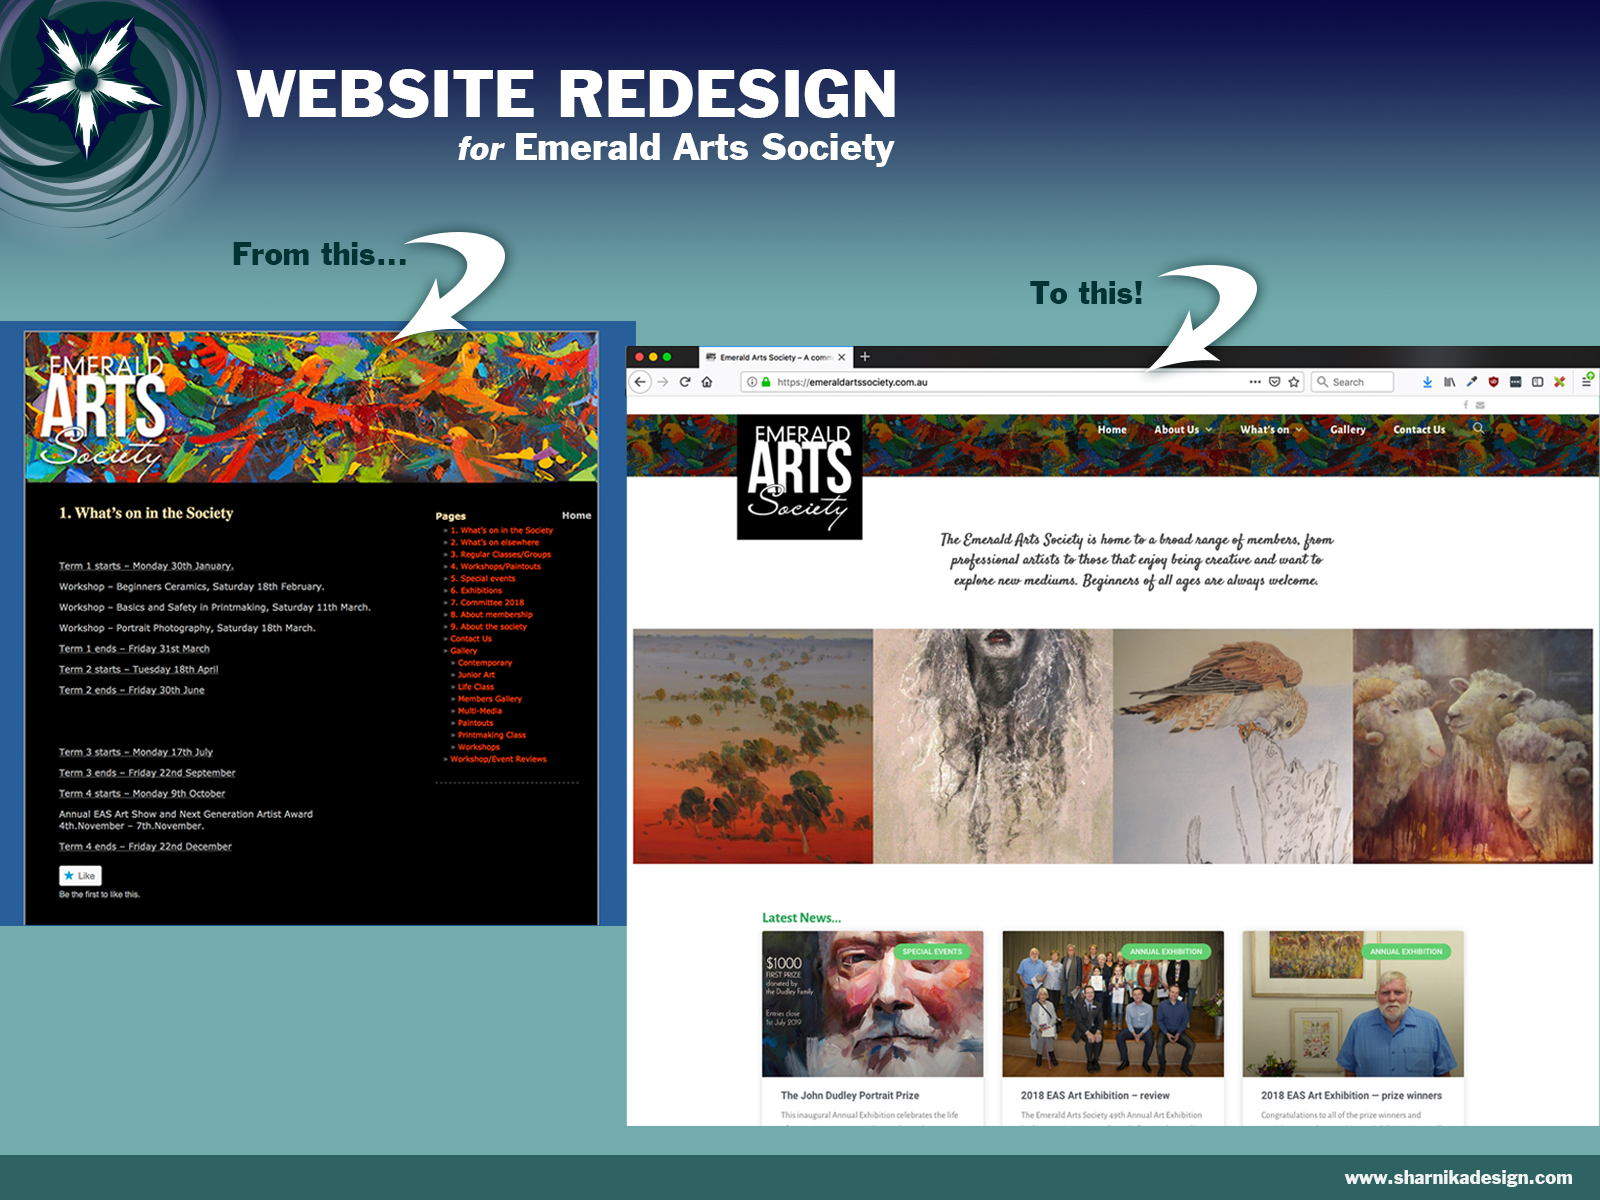 Website redesign for Emerald Arts Society